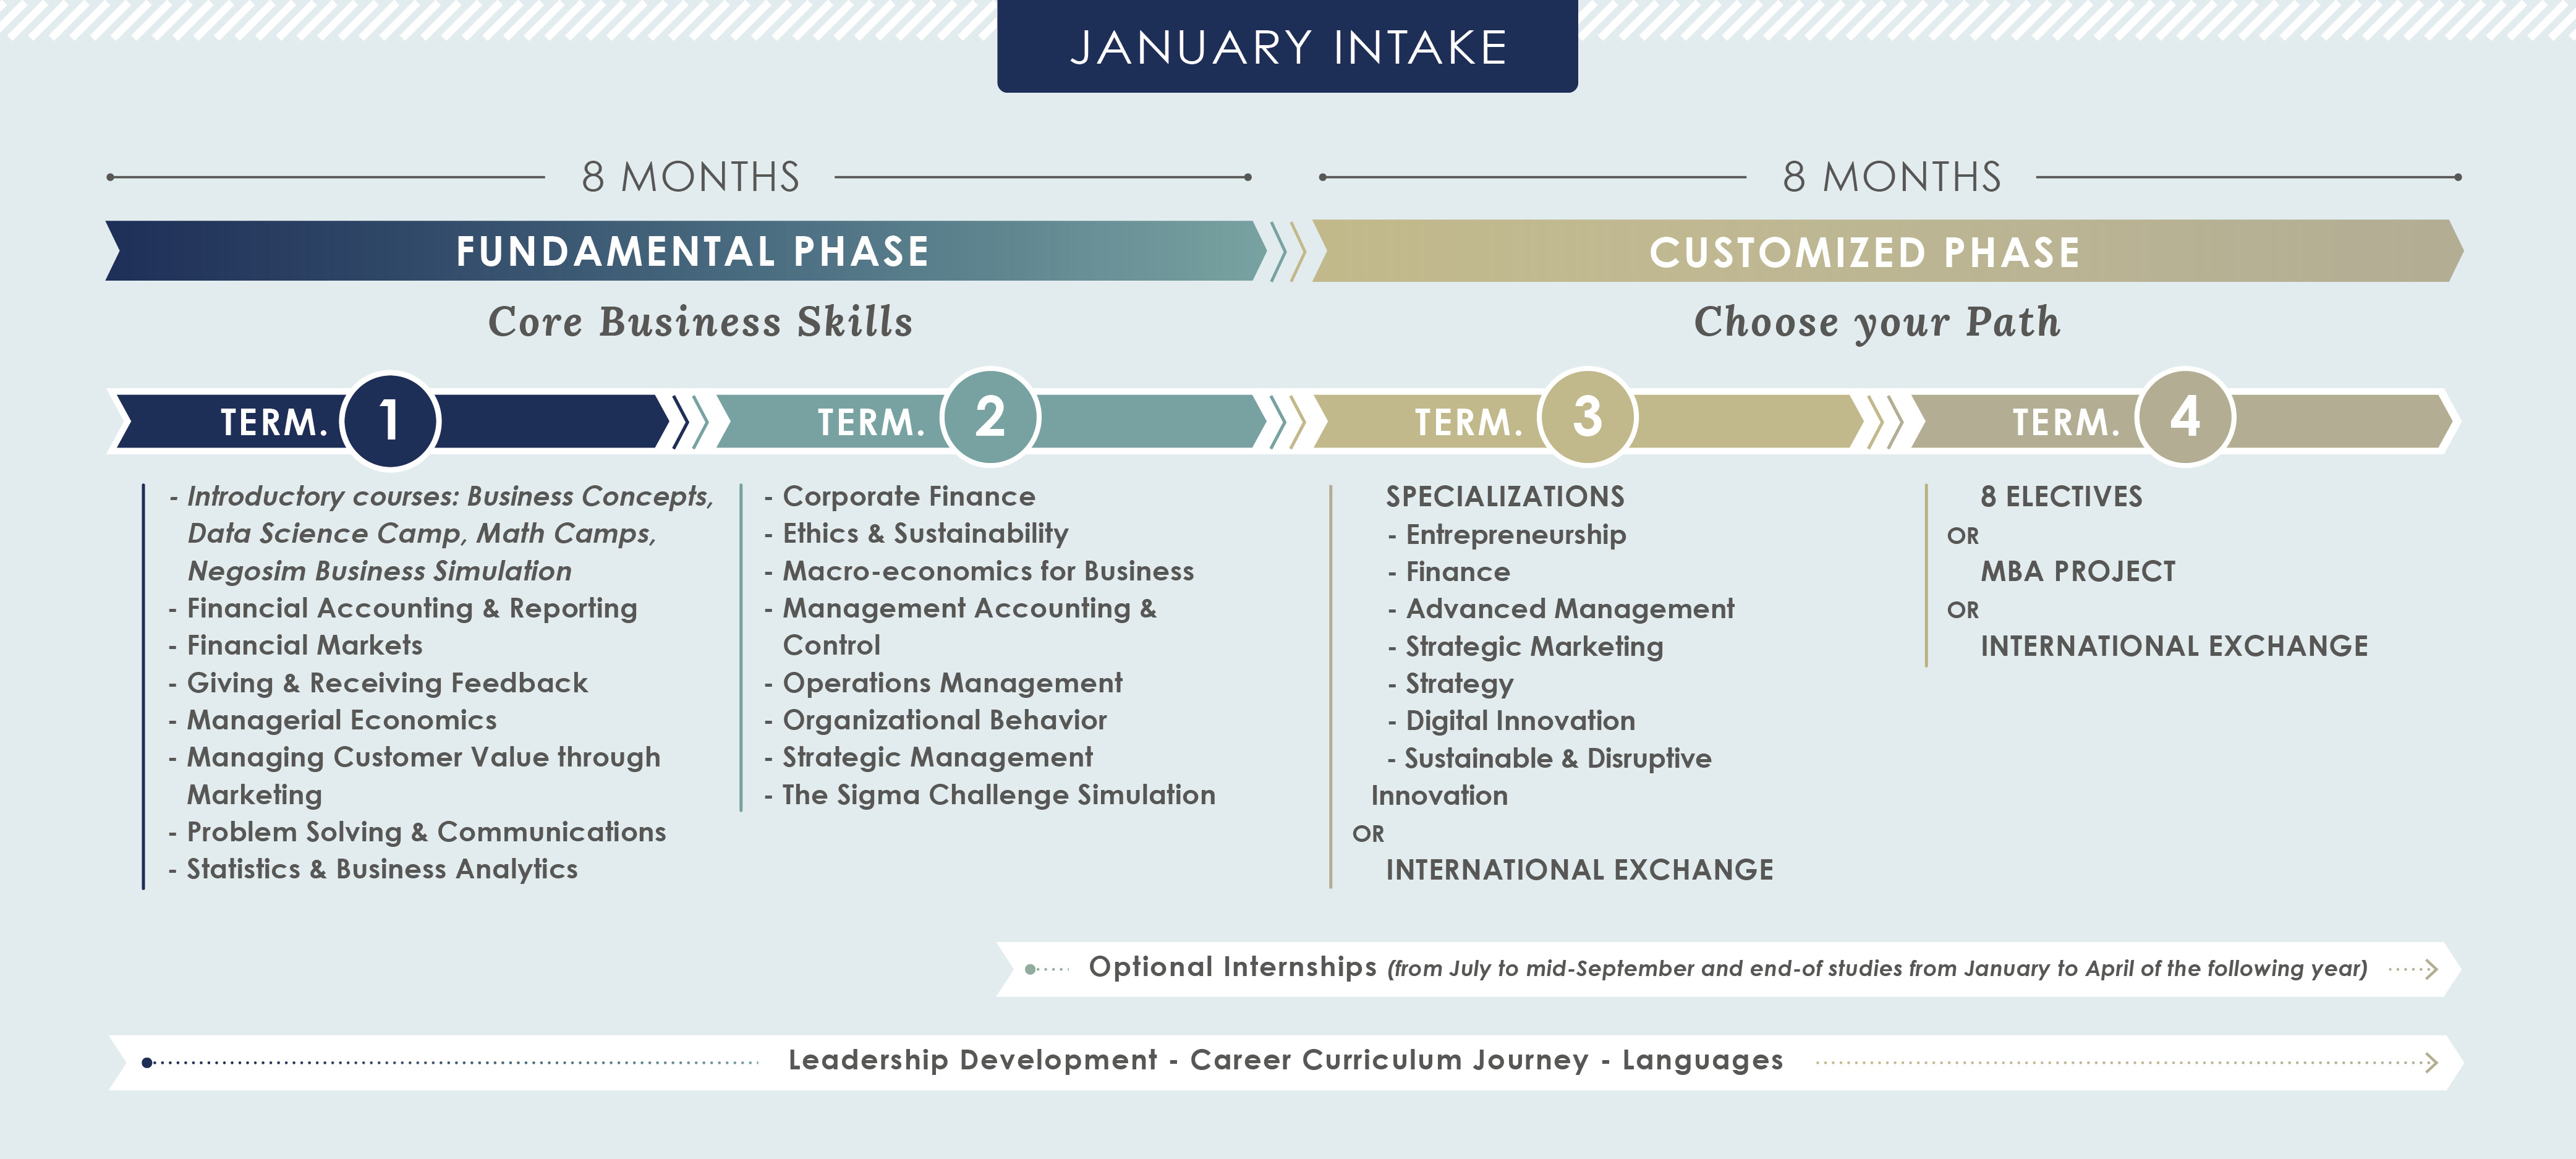 The class schema for our January intakes